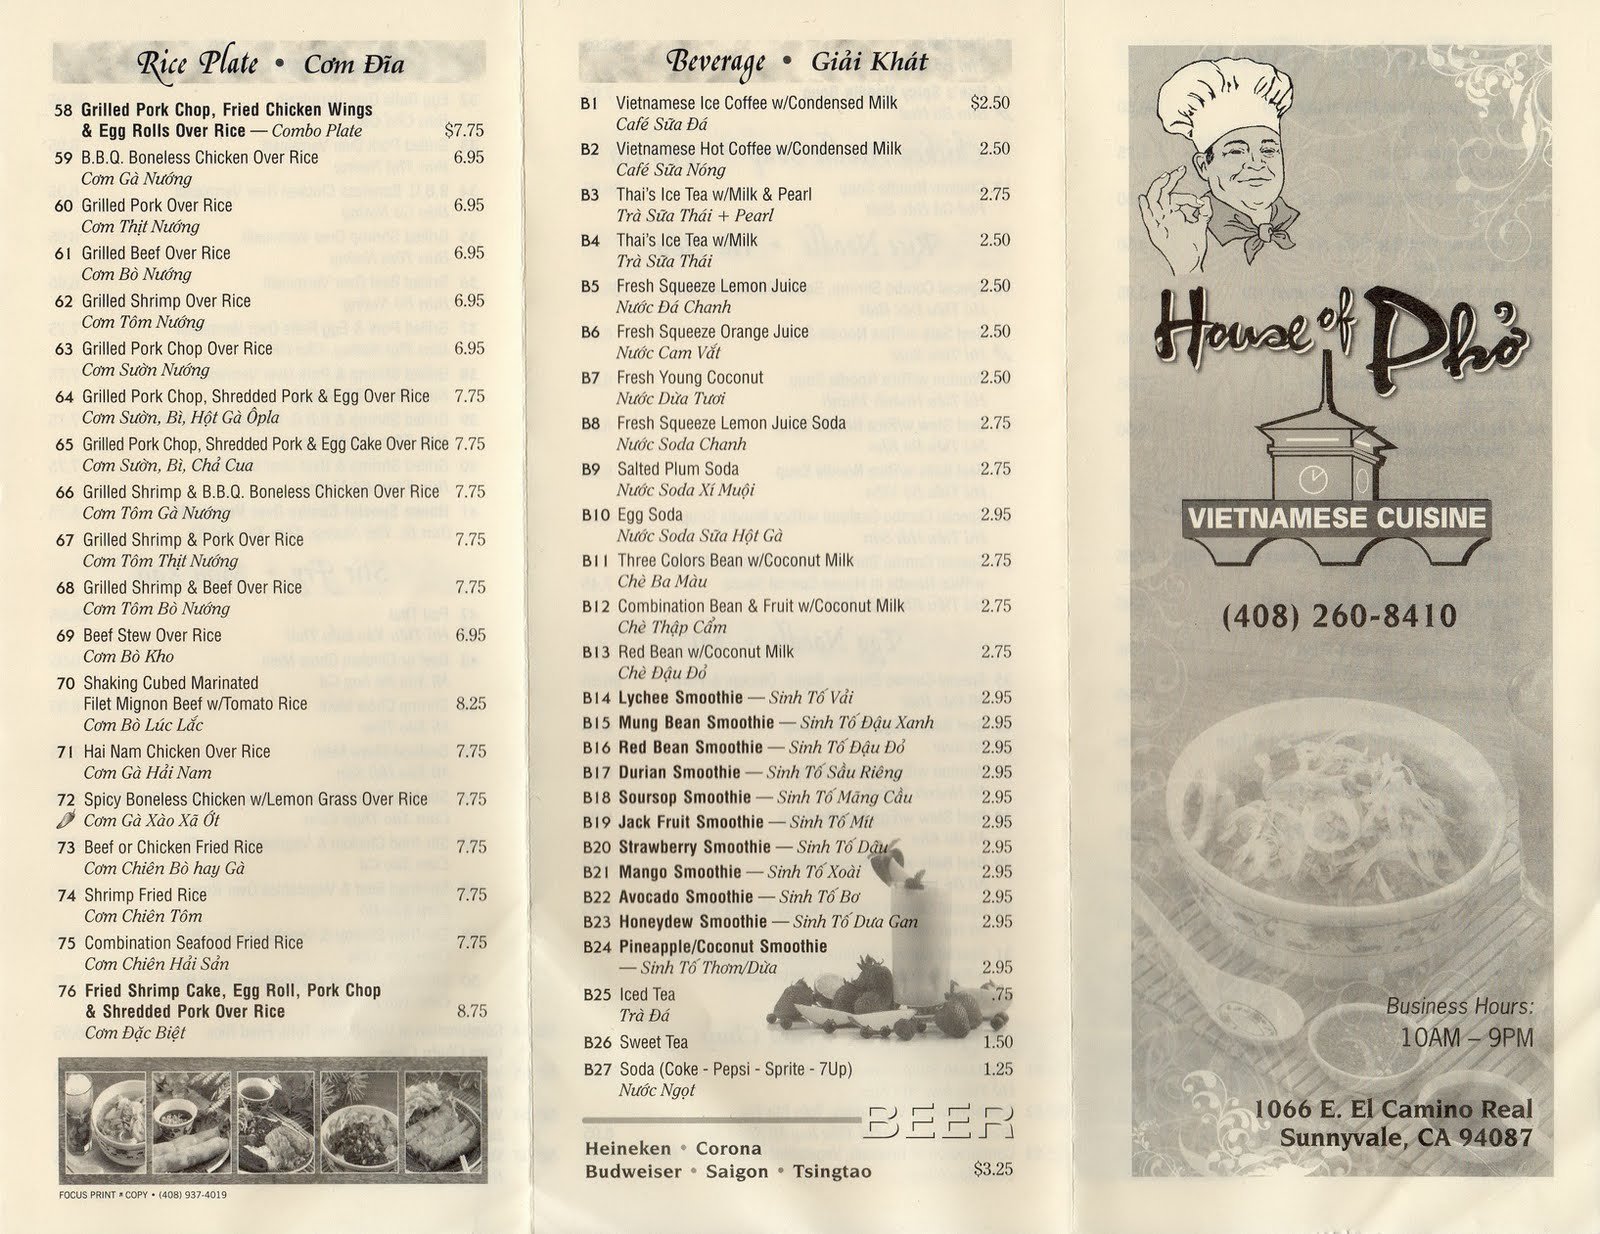 House of Pho: To-Go Orders